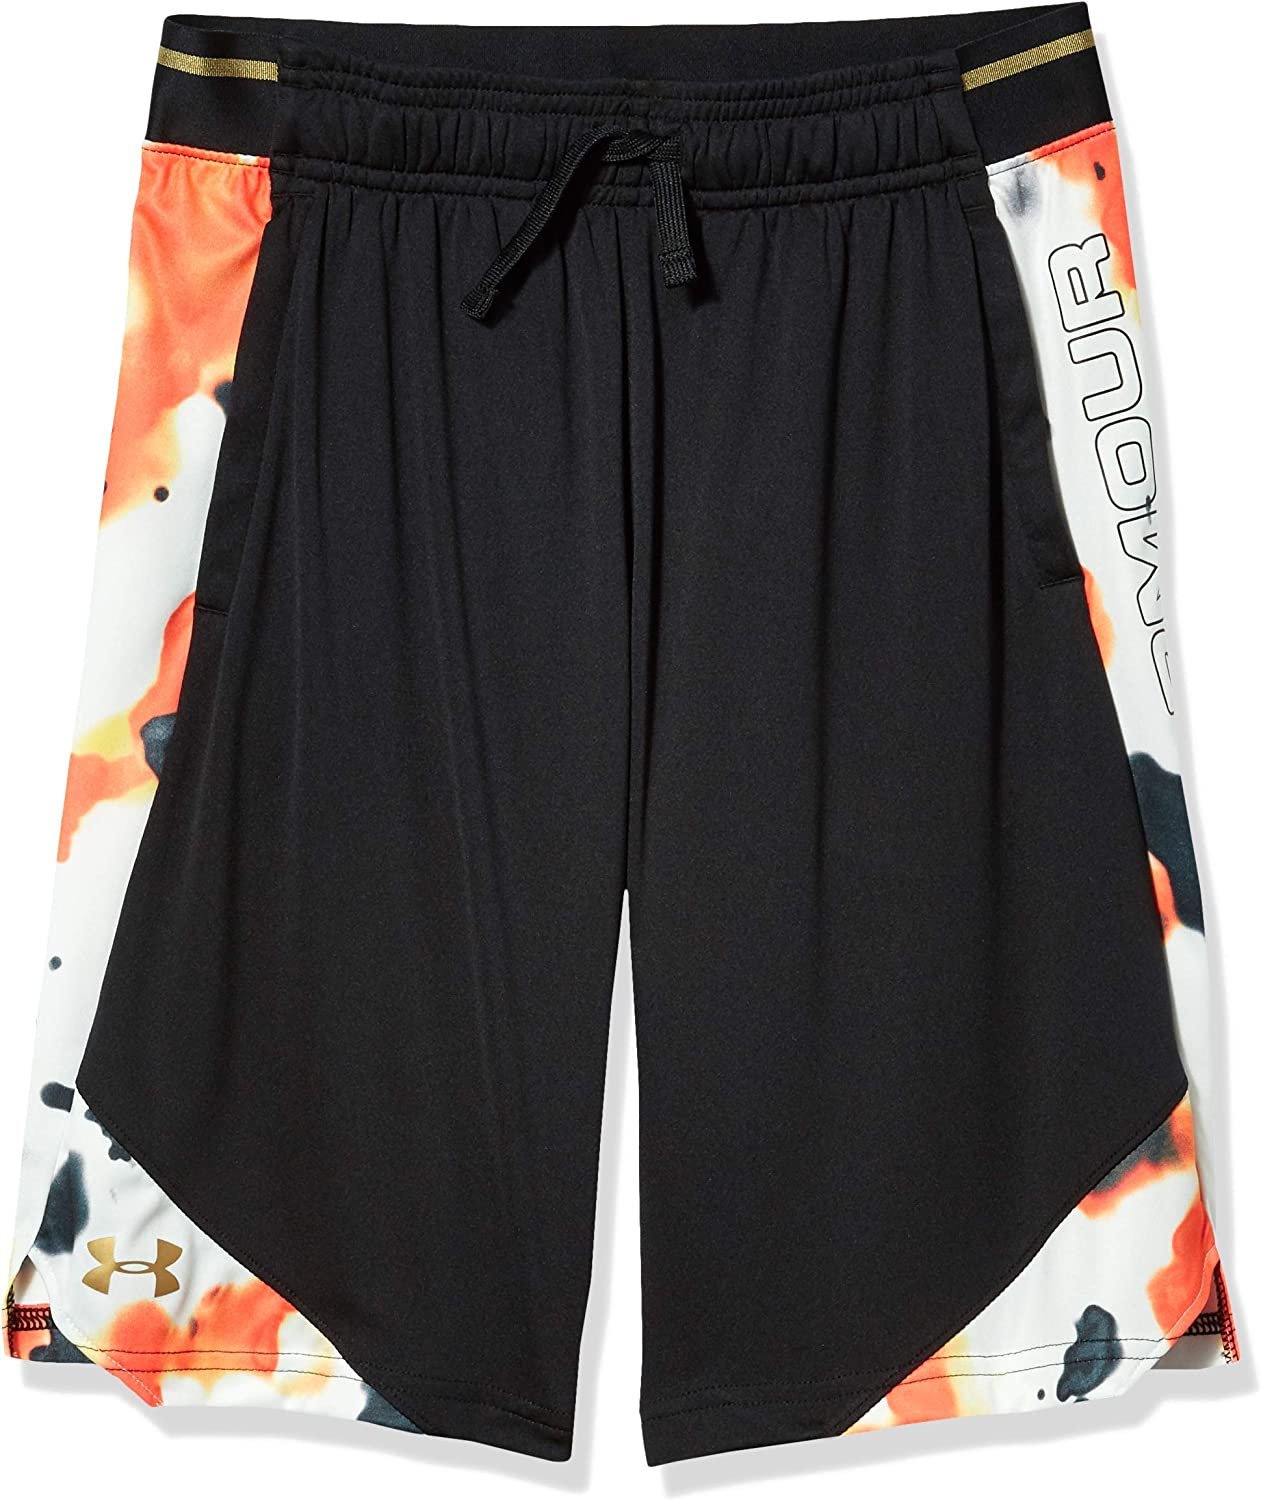 Under Armour Boys' Top Step Stunt Gym Workout Shorts